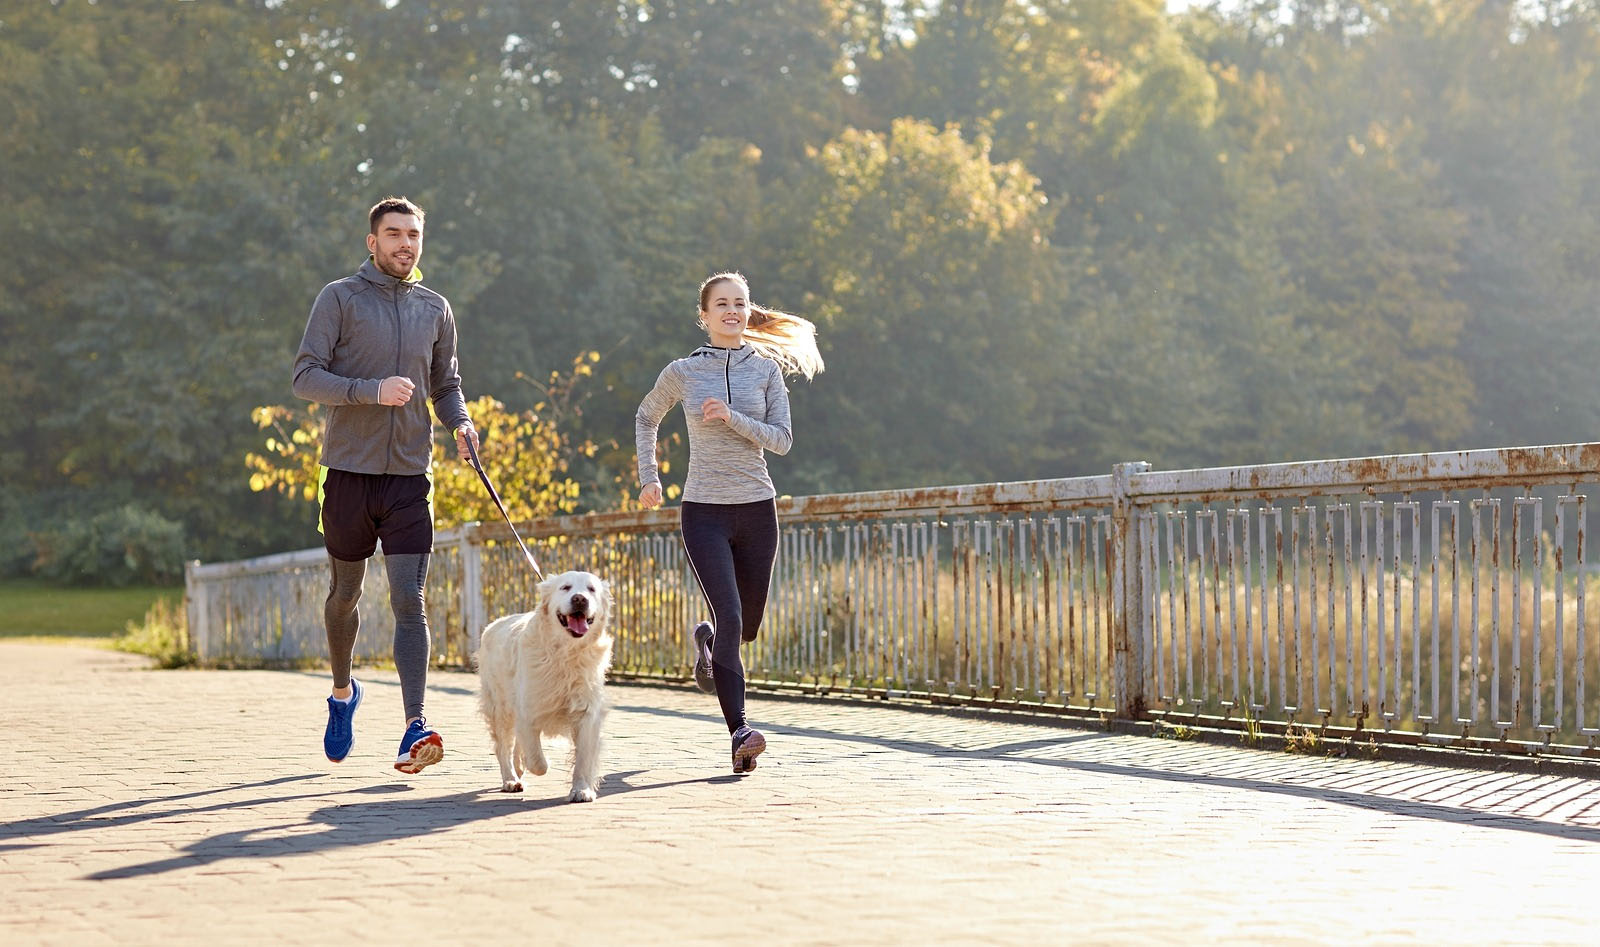 Five ways to make your workout more fun